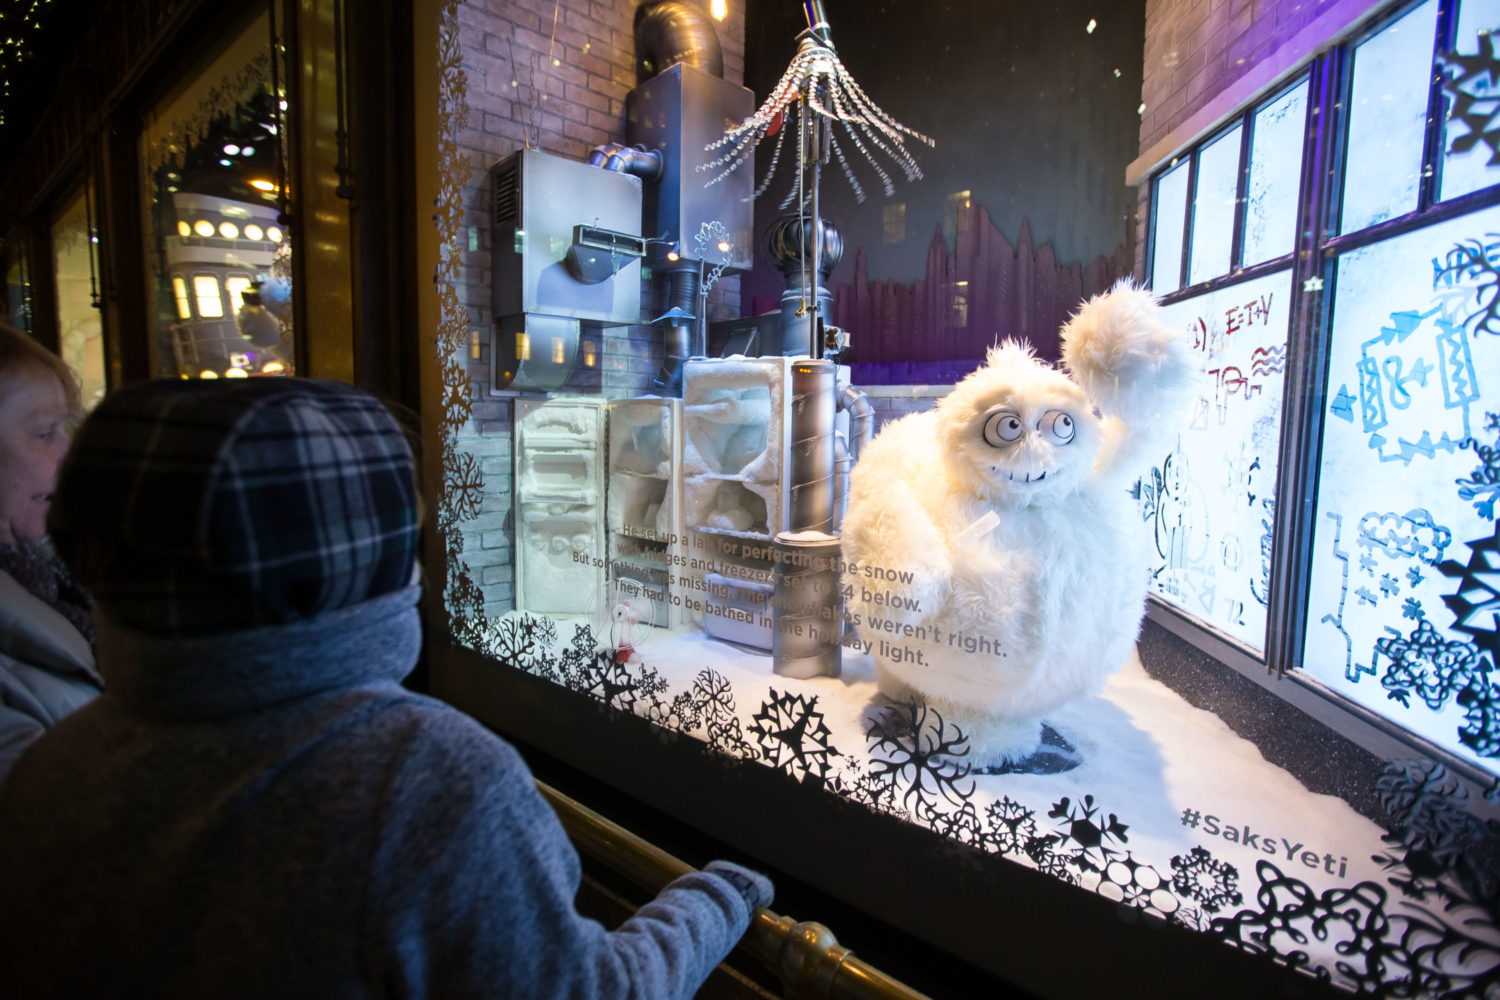 Stefan G. Bouchers legendary yeti in the Saks Fifth Avenue seasonal Holiday windows. (Photo by Ben Hider/Getty Images)